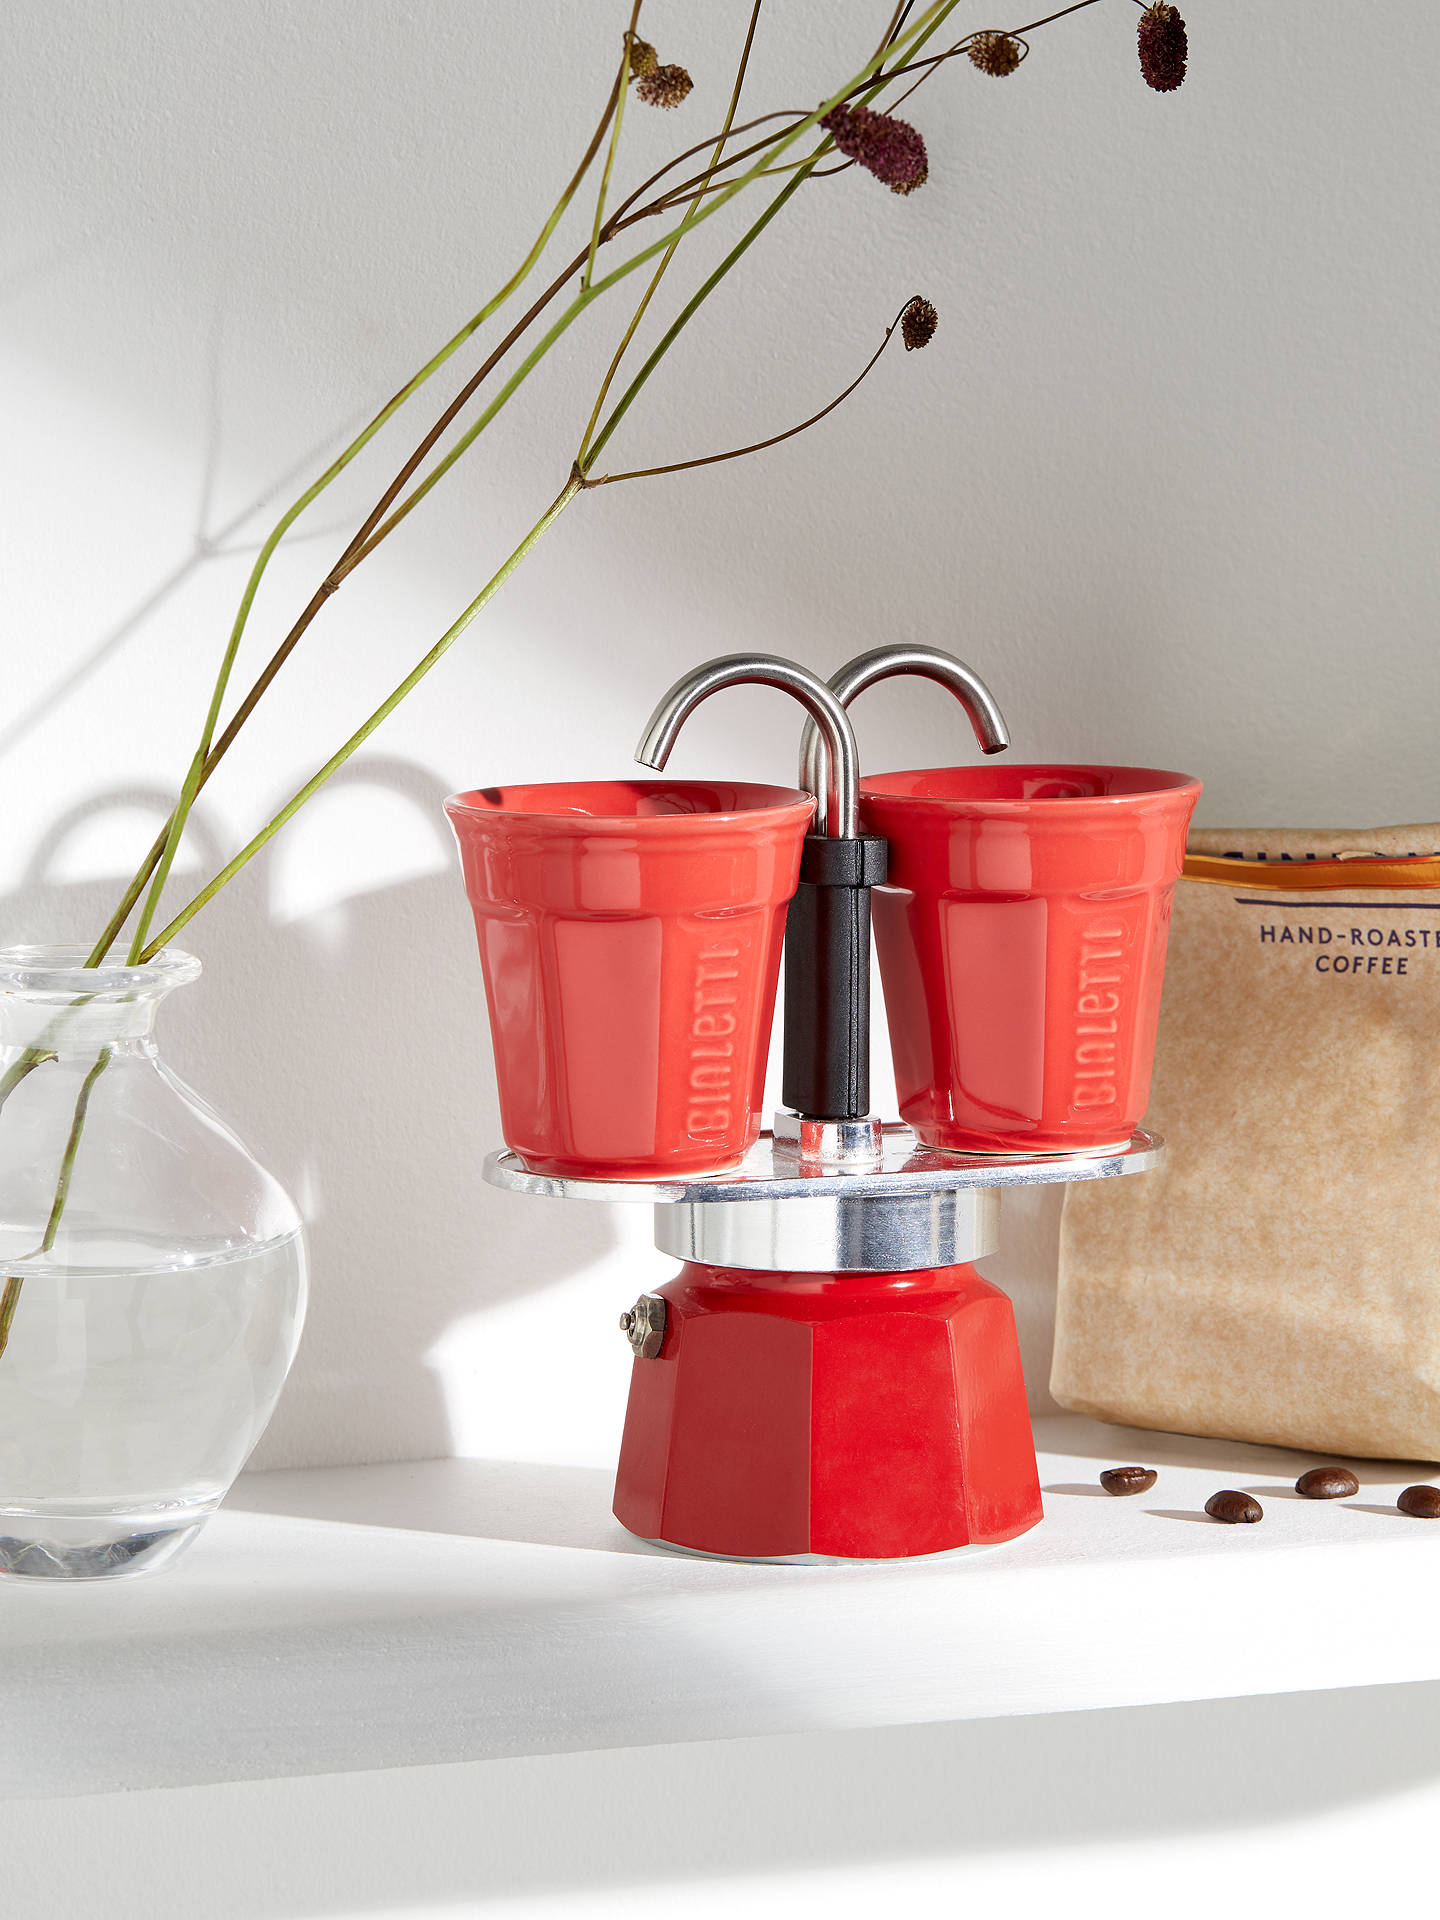 BuyBialetti Mini Express Gas Hob Coffee Maker with 2 Cups, Red Online at johnlewis.com